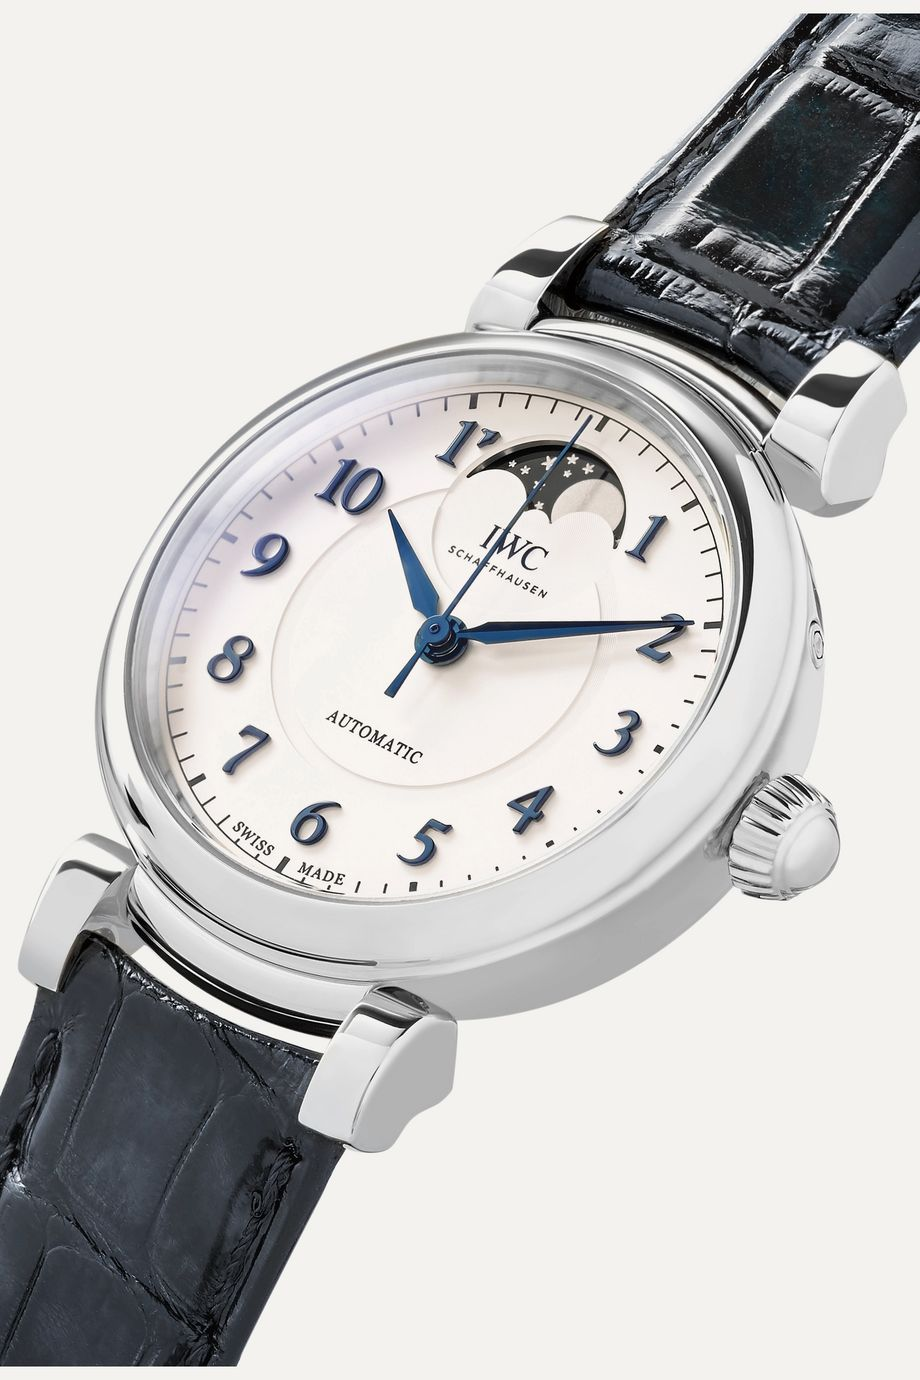 IWC SCHAFFHAUSEN Da Vinci Automatic Moon Phase 36mm stainless steel and alligator watch